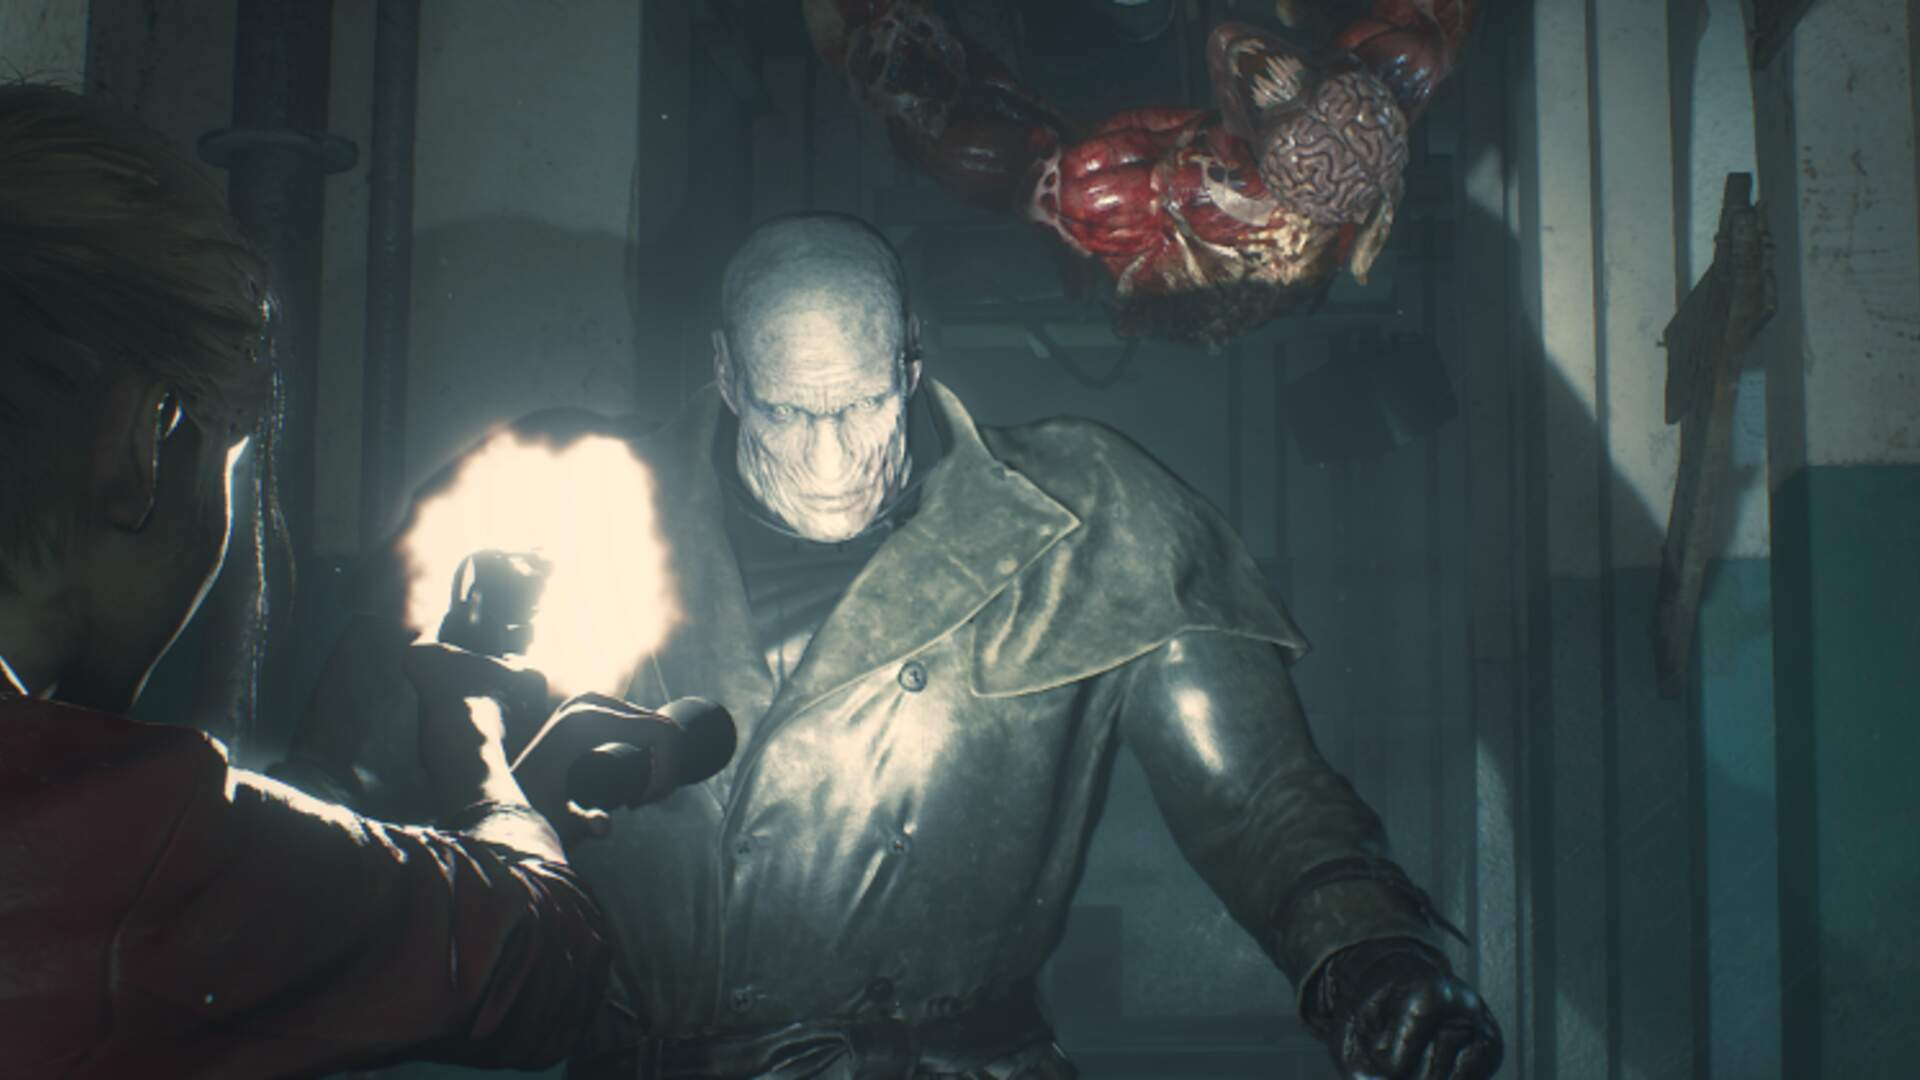 Resident Evil 2 Remake Preview: A Night With the Stronger, More Annoying Mr. X